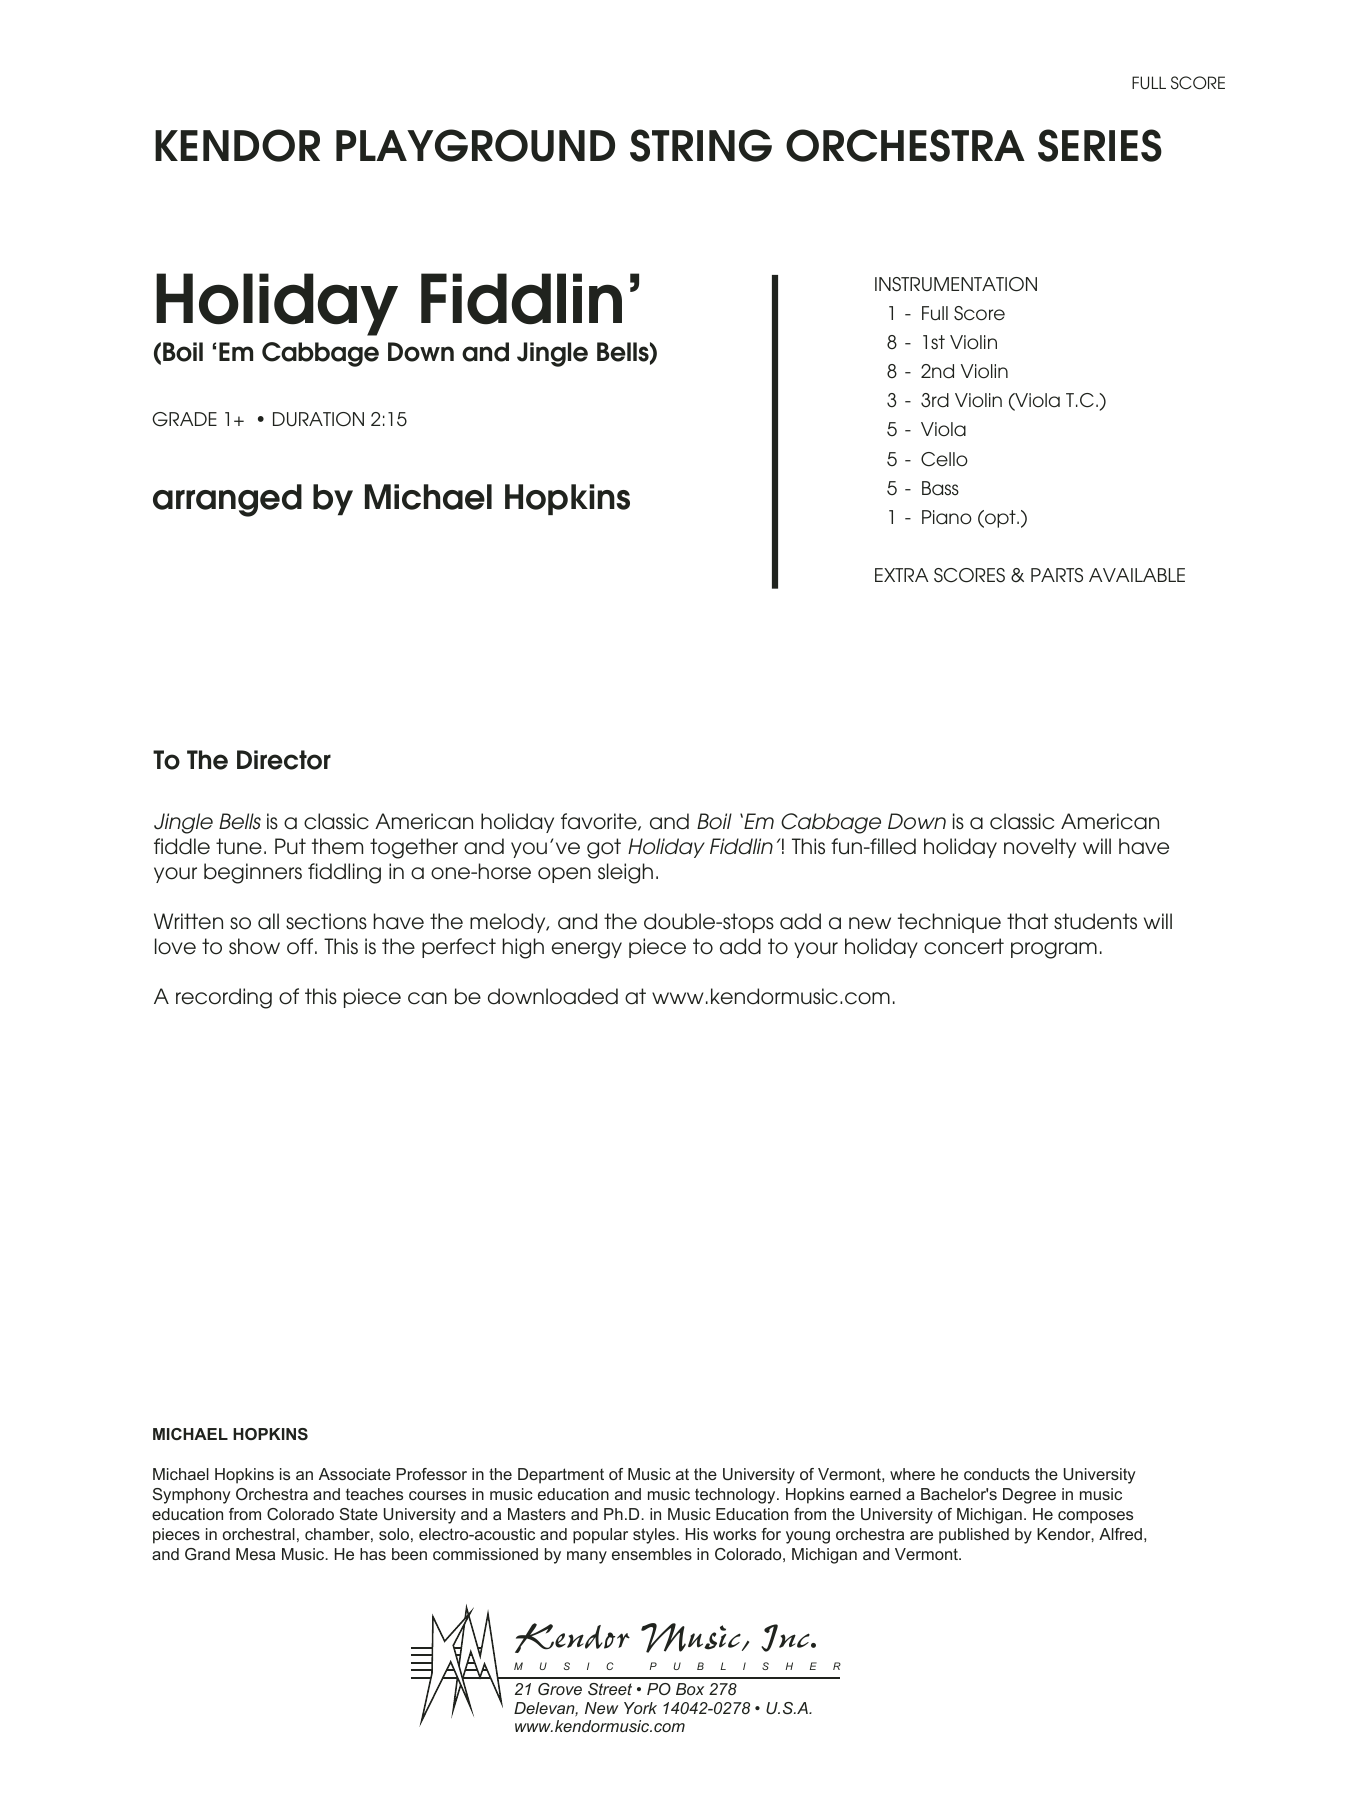 Holiday Fiddlin' (Boil 'Em Cabbage Down and Jingle Bells) (COMPLETE) sheet music for orchestra by Michael Hopkins